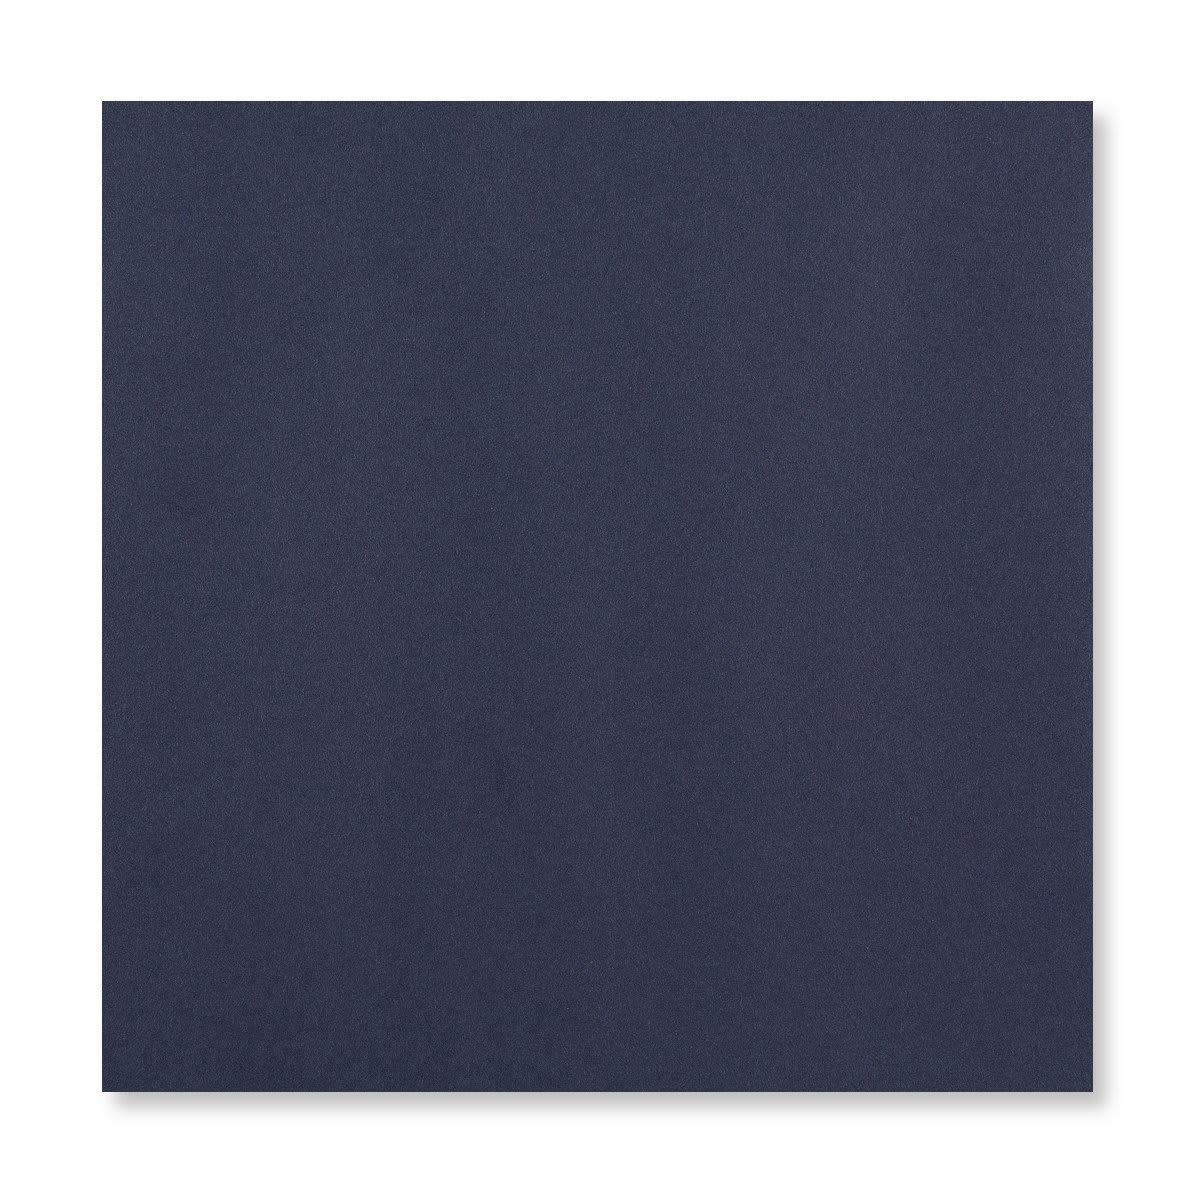 DARK BLUE 155MM SQUARE PEEL & SEAL ENVELOPES